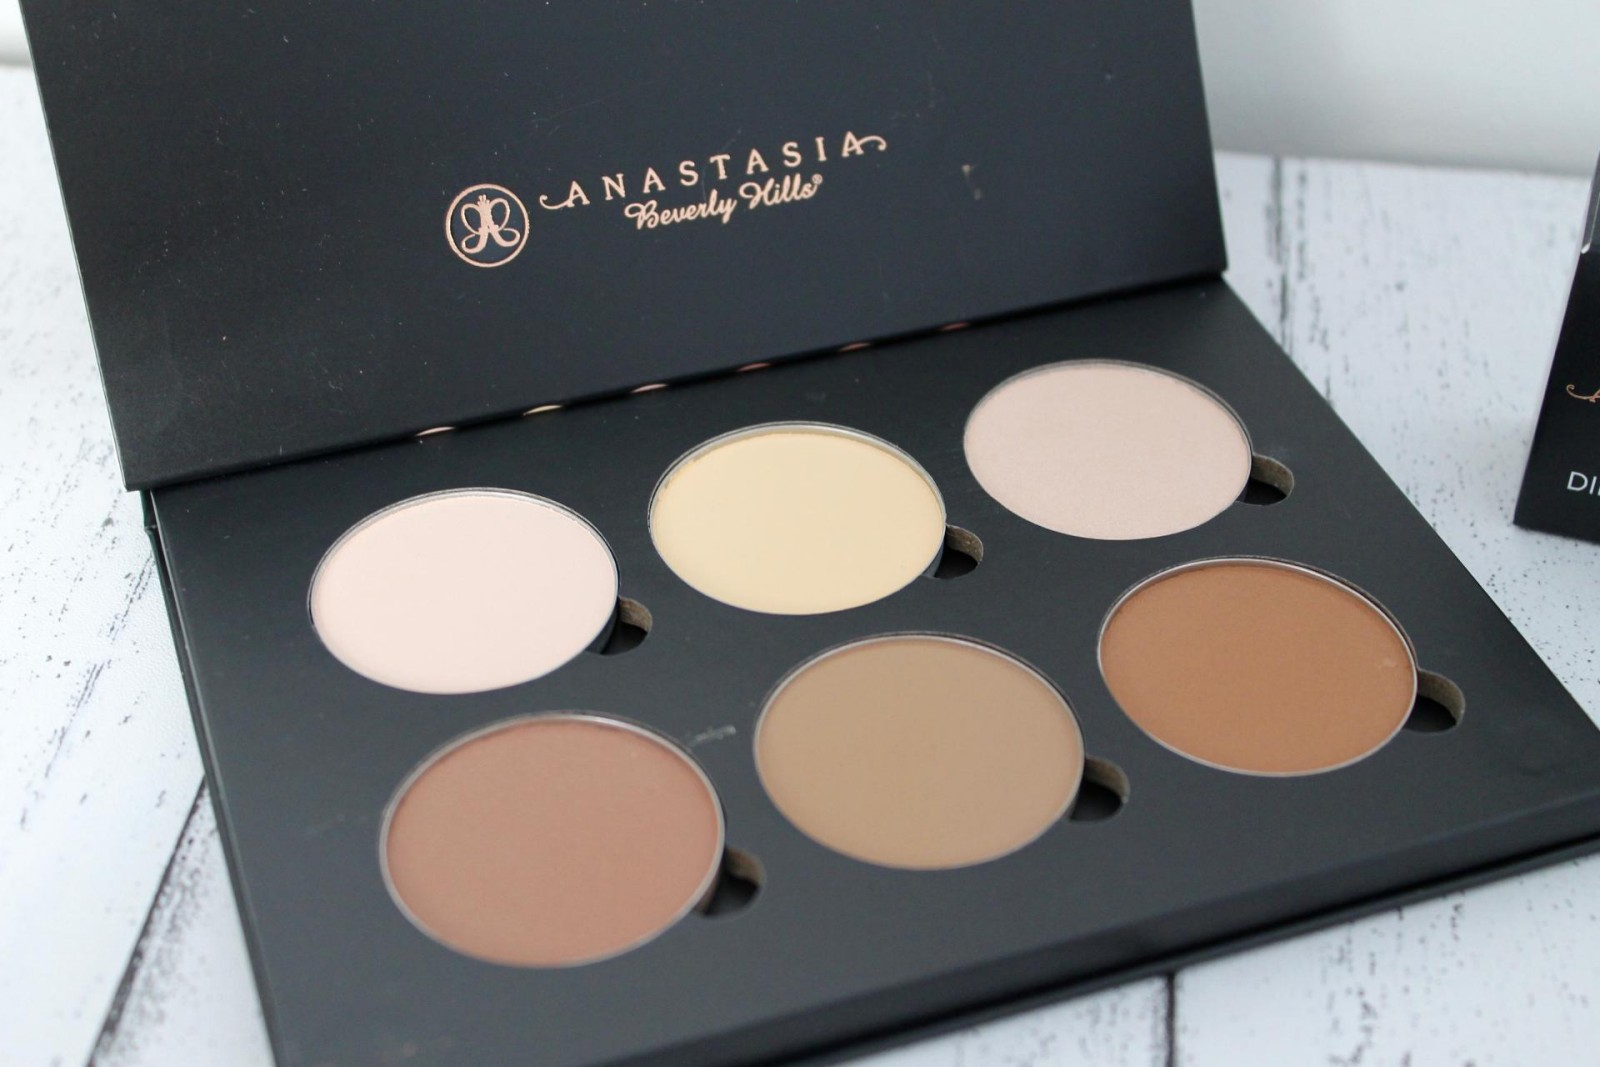 Anastasia Beverly Hills Review 3